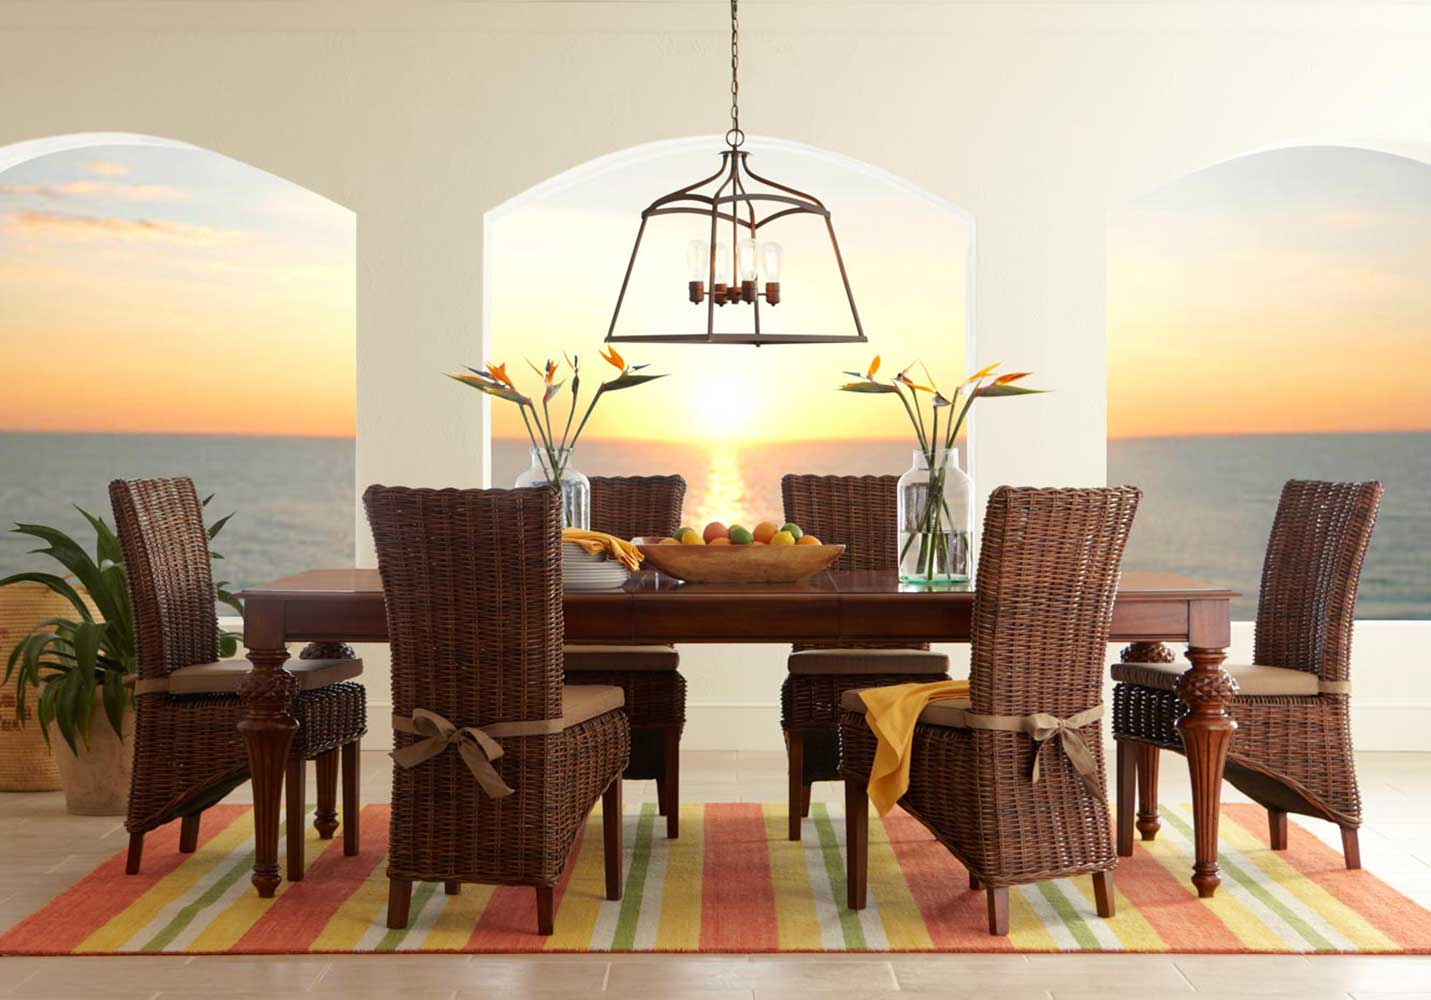 Badcock Dining Room Sets Bombay 5 Pc Dining Room Badcock Home Furniture More Of South